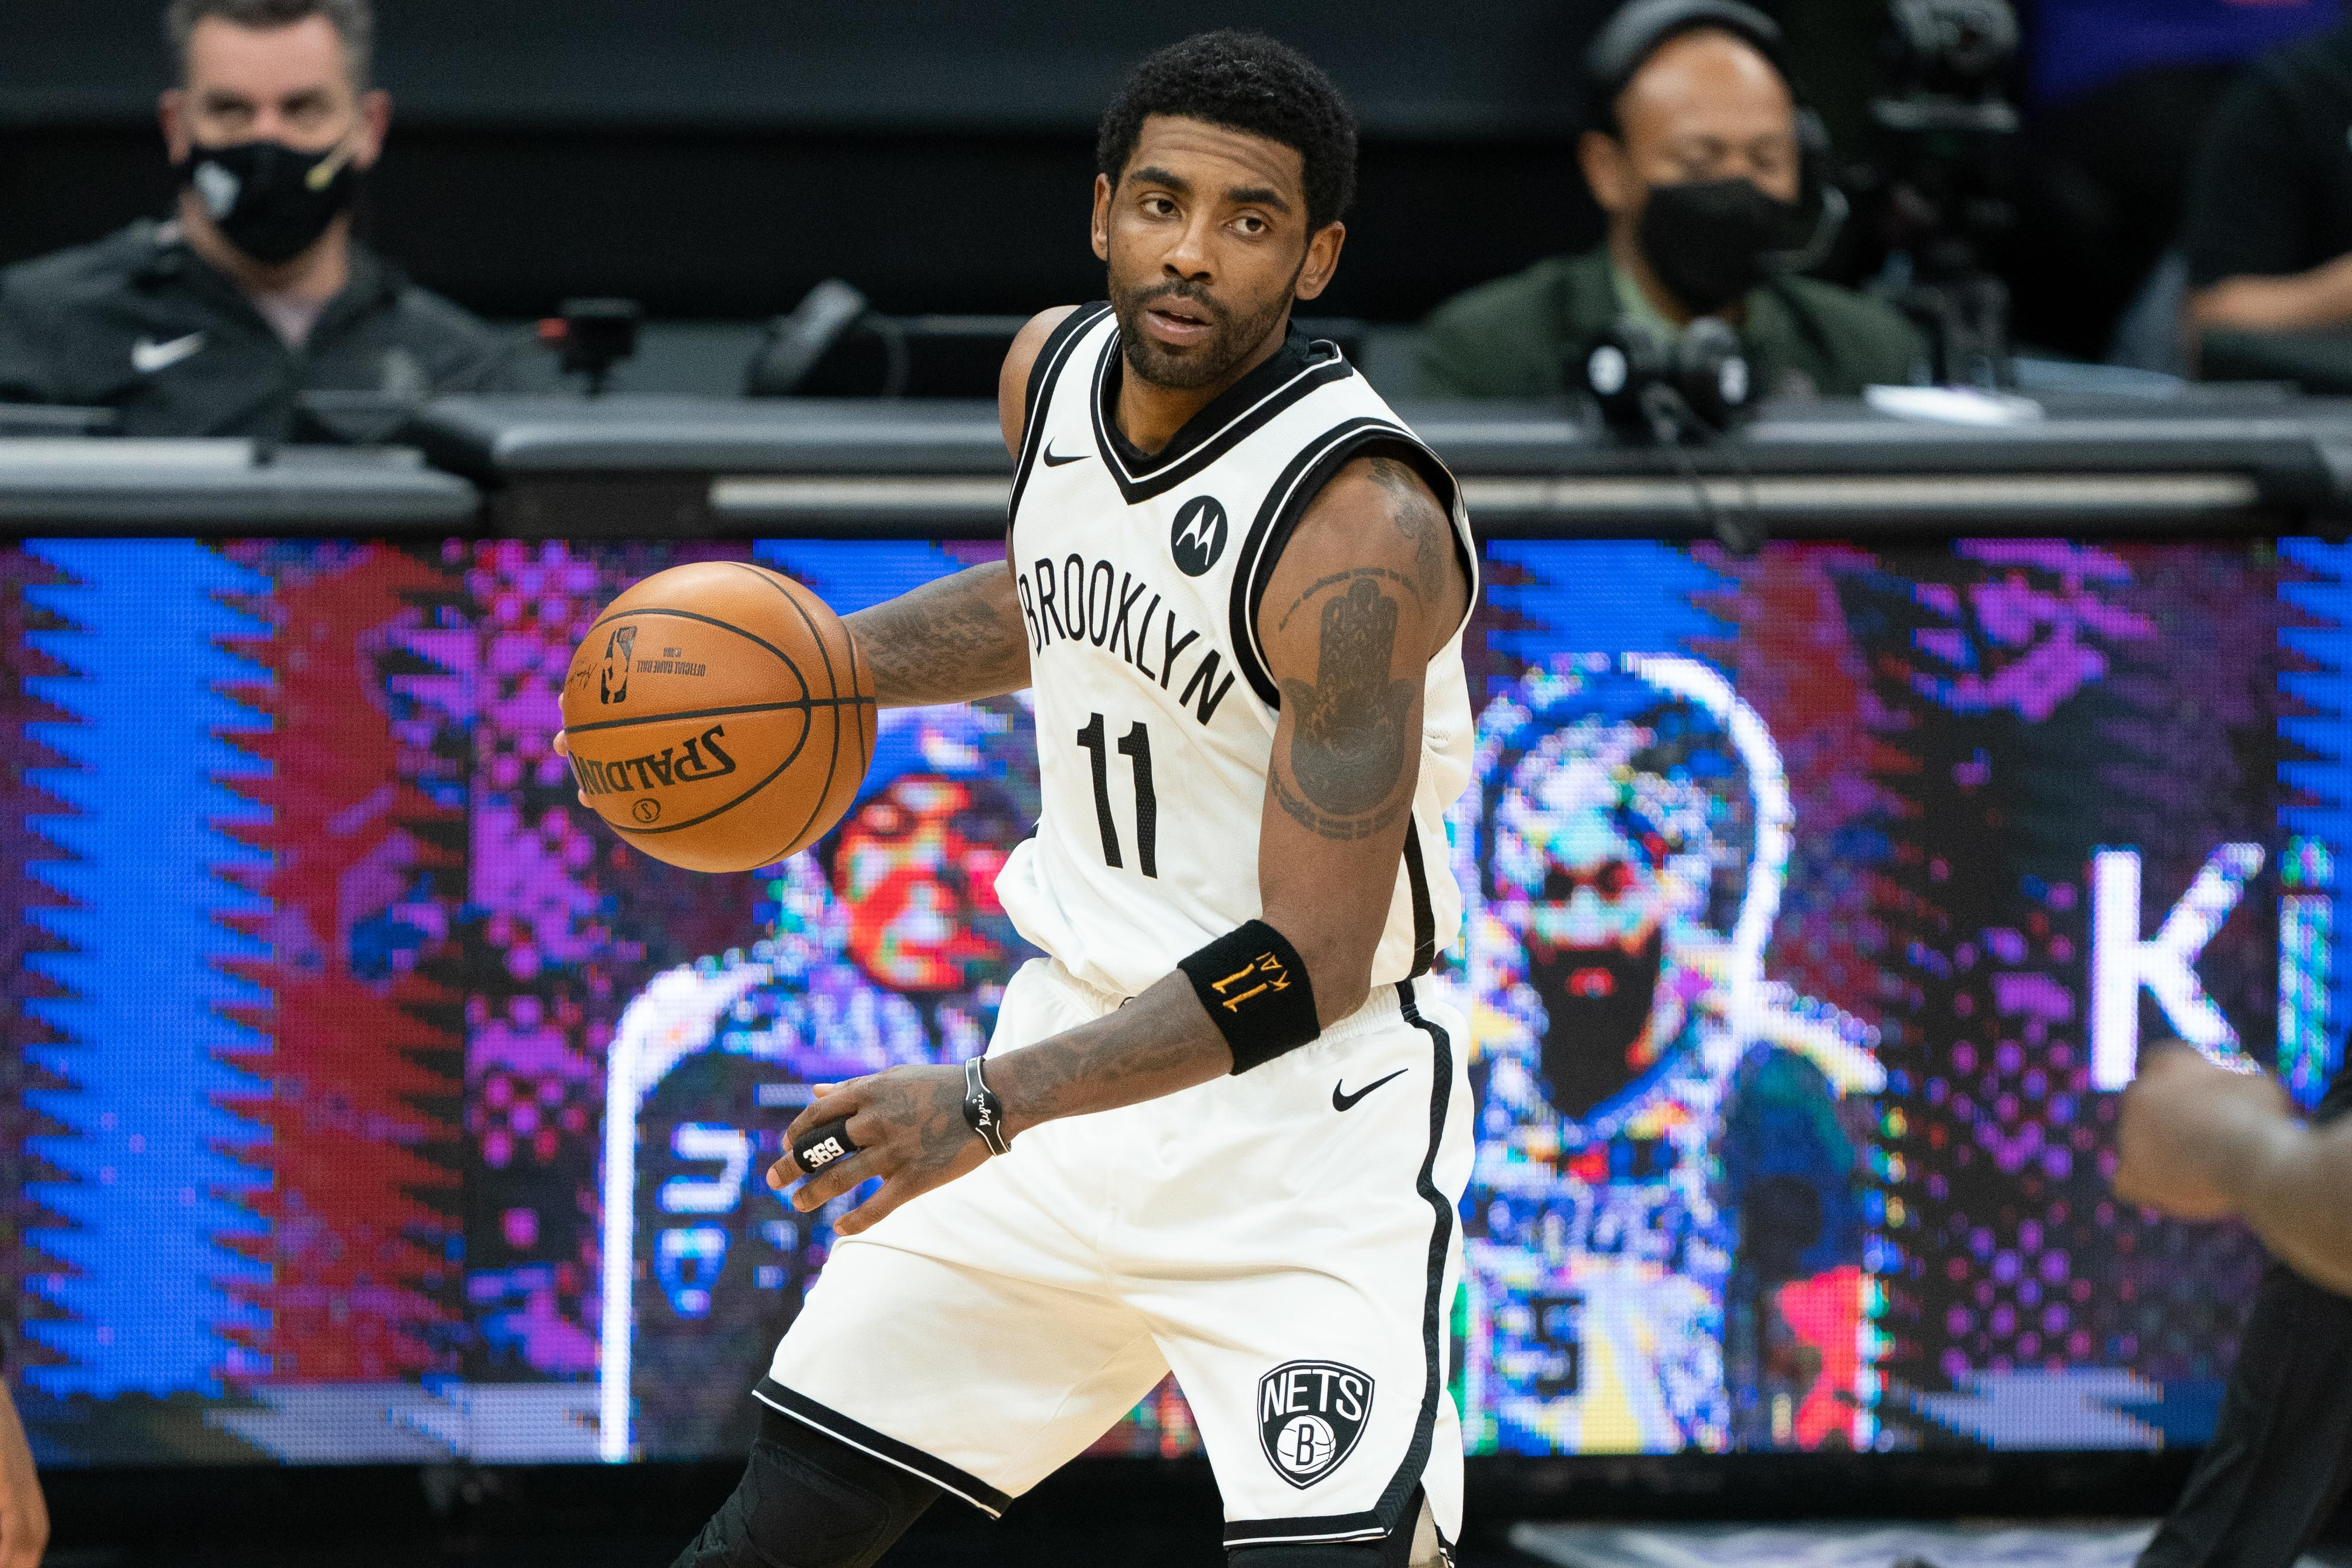 Nets ban Kyrie Irving from team activities  until he is eligible to be a full participant